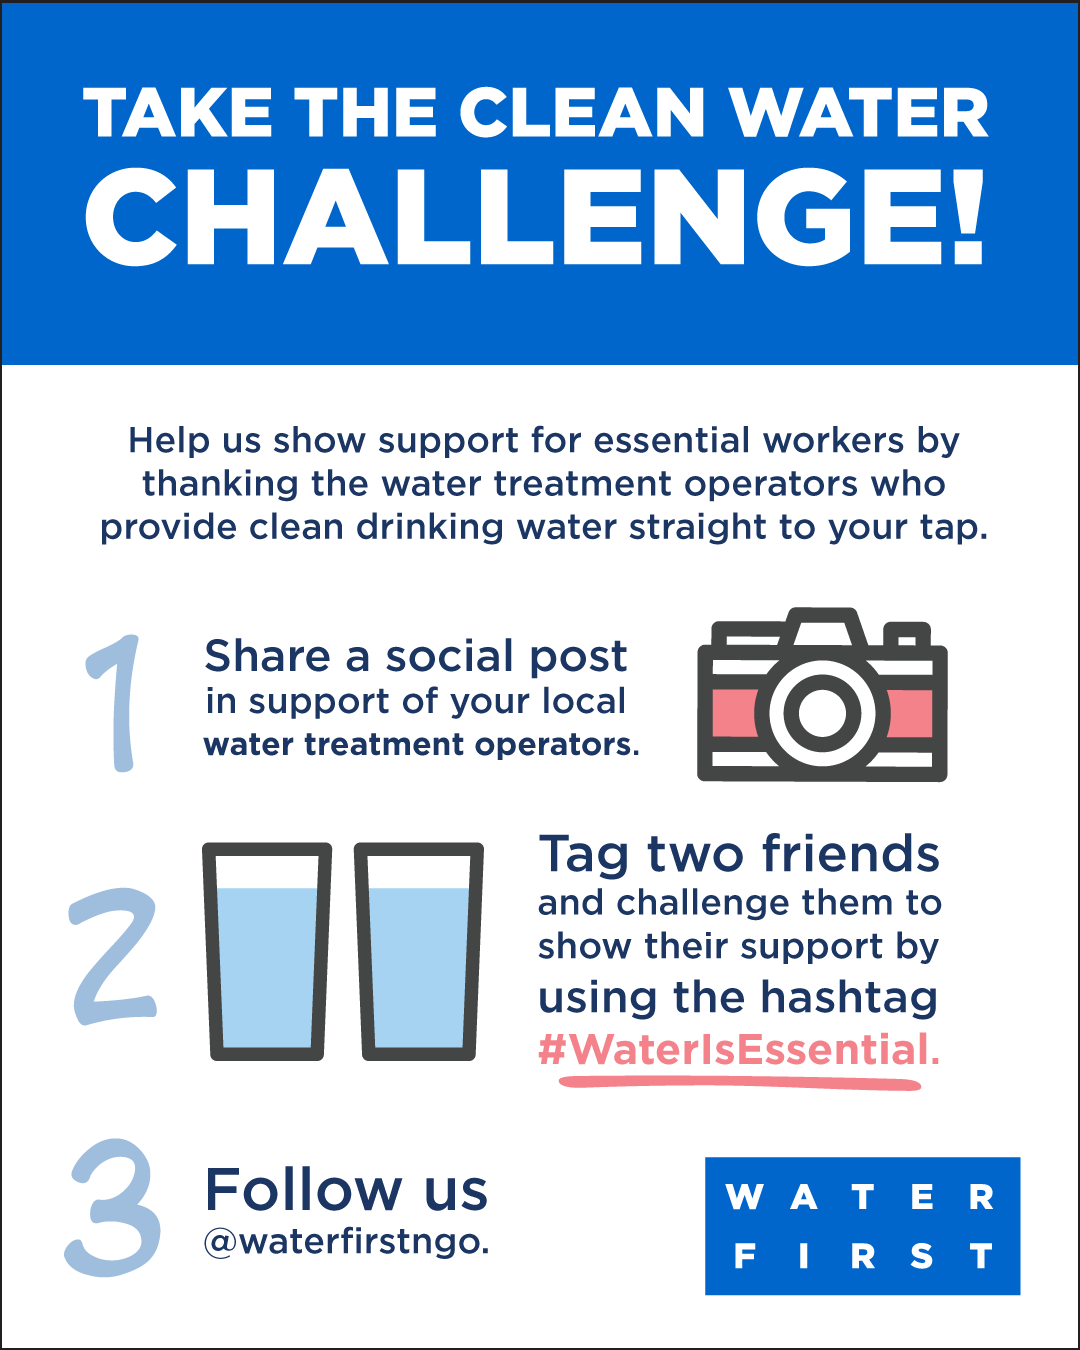 Take the clean water challenge